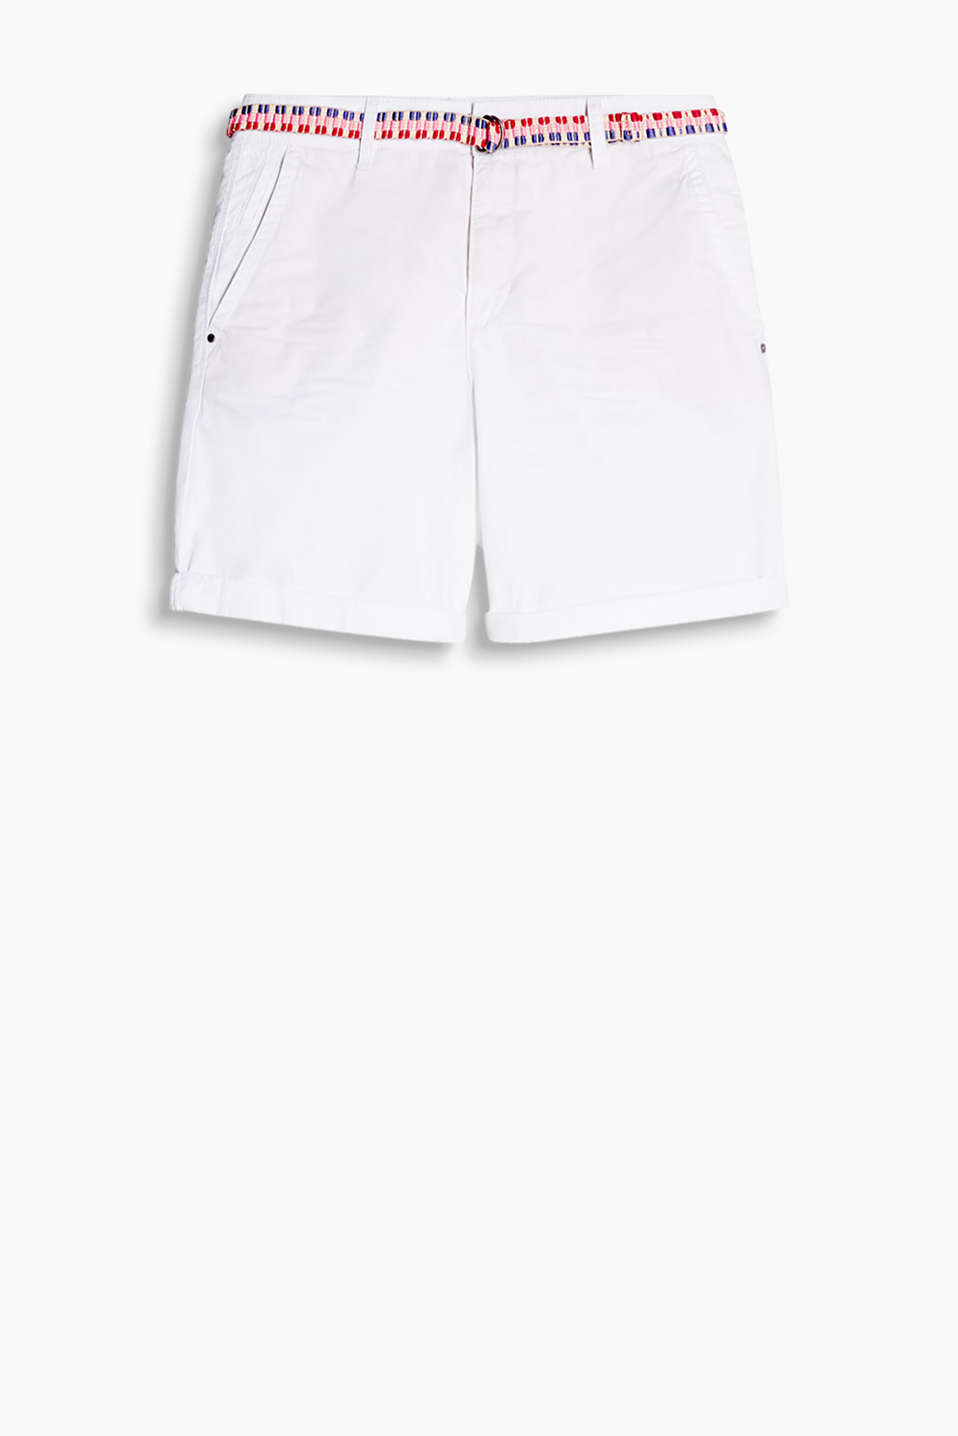 Lightweight cotton short with a bright woven belt